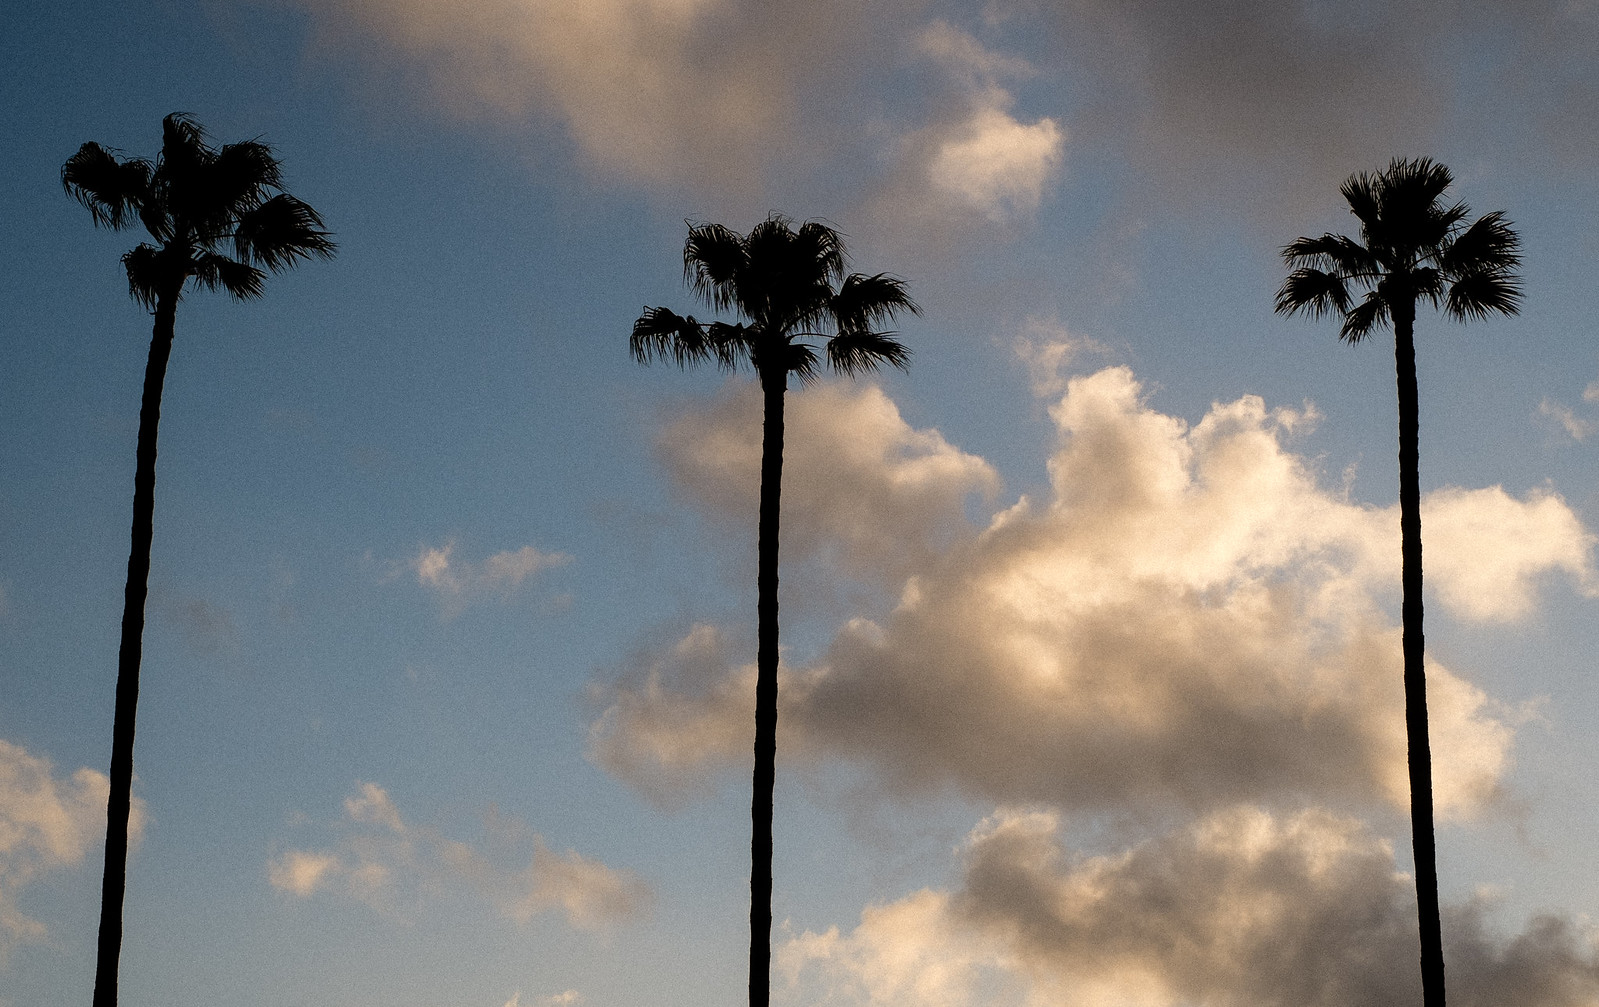 3 Palms | by michaelj1998